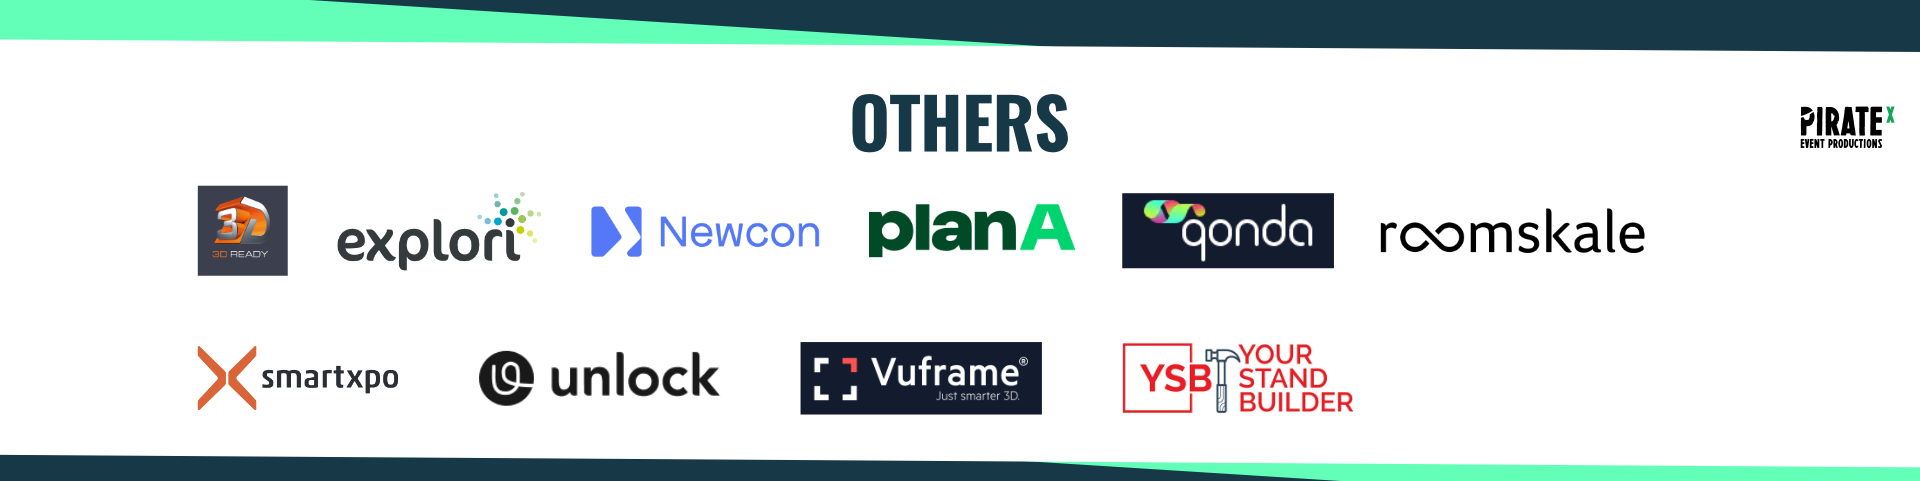 Overview of the Eventtech Landscape April 2021 Update Others Category